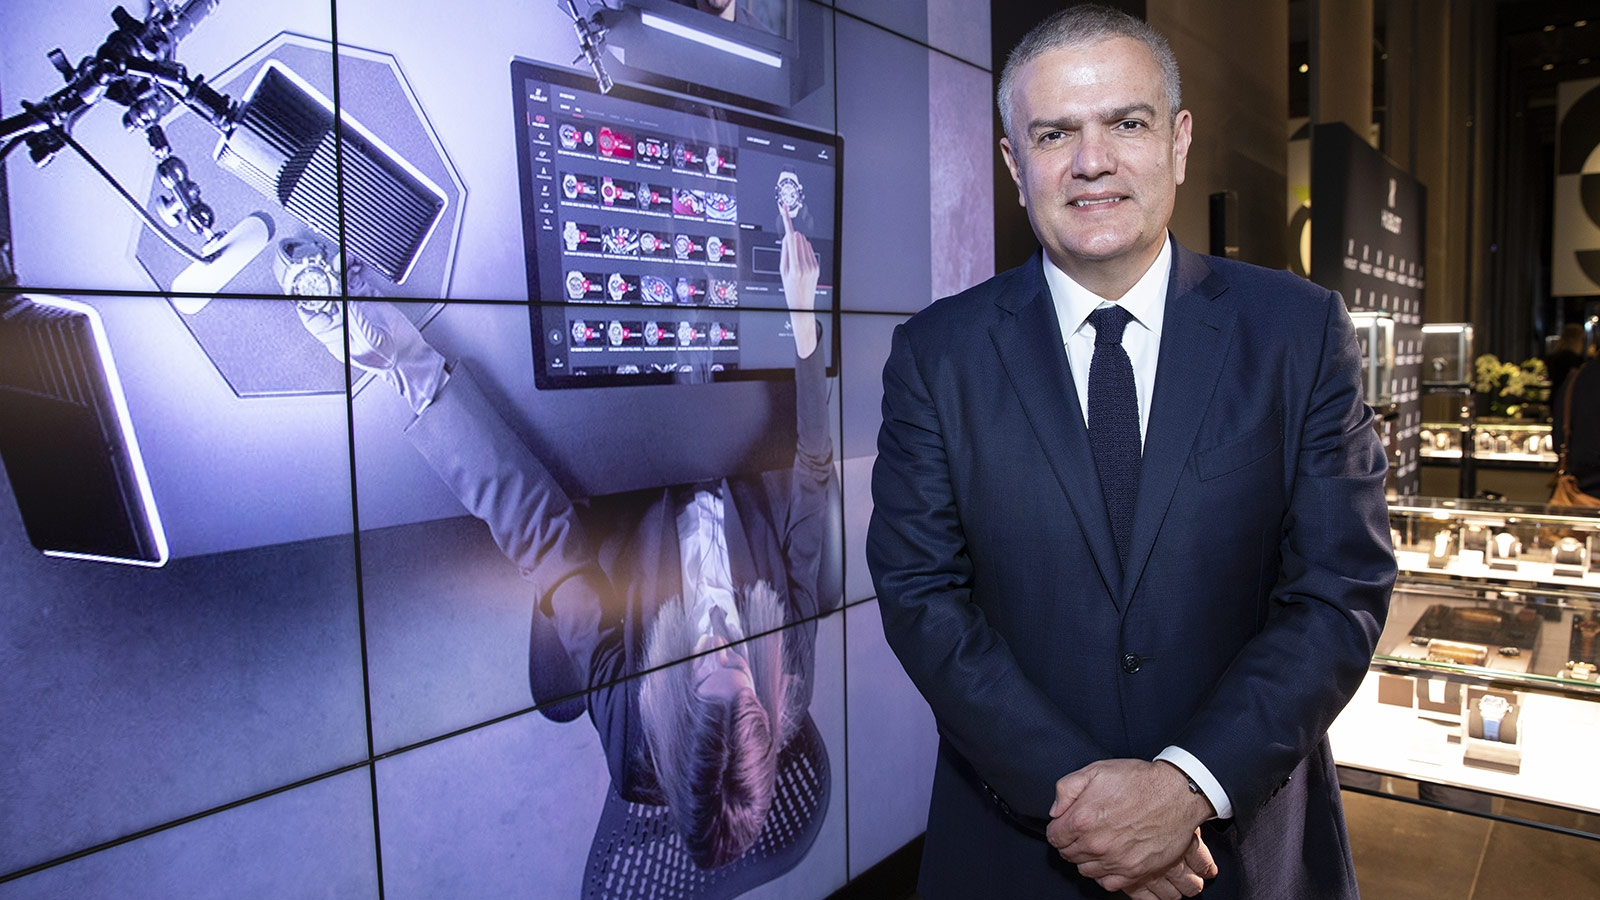 digital boutique hublot 2018 010 1 - Hublot busca estar a la vanguardia con una boutique digital